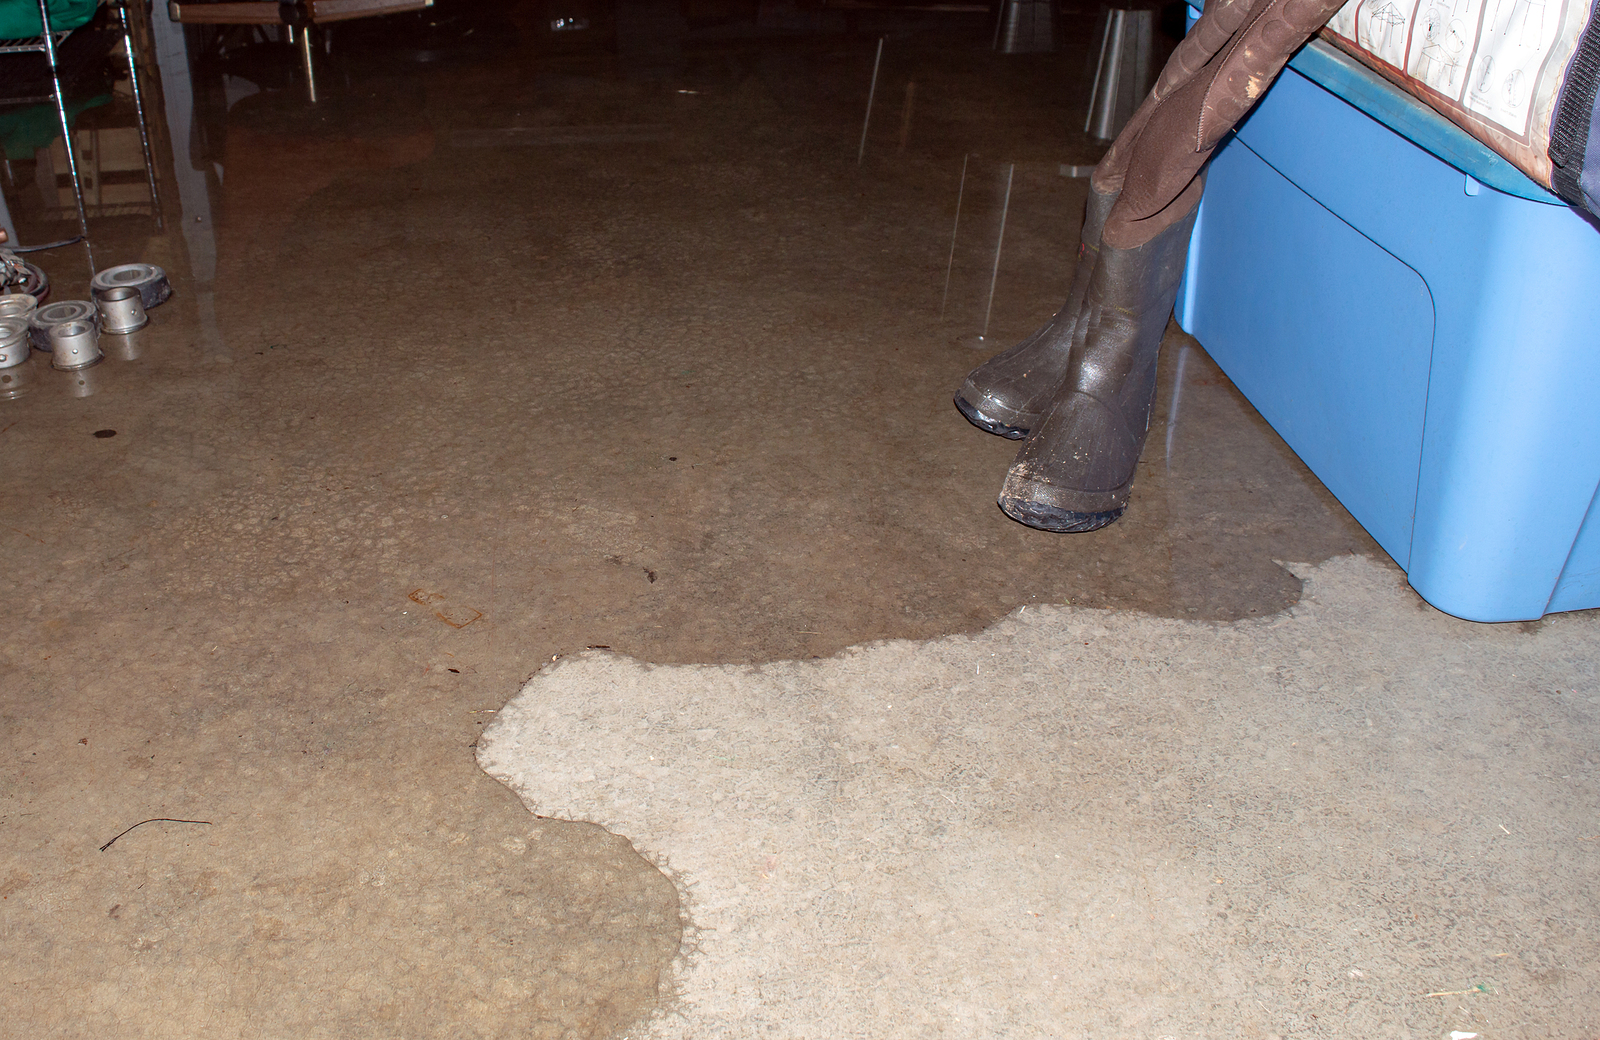 Water expands in flooded basement